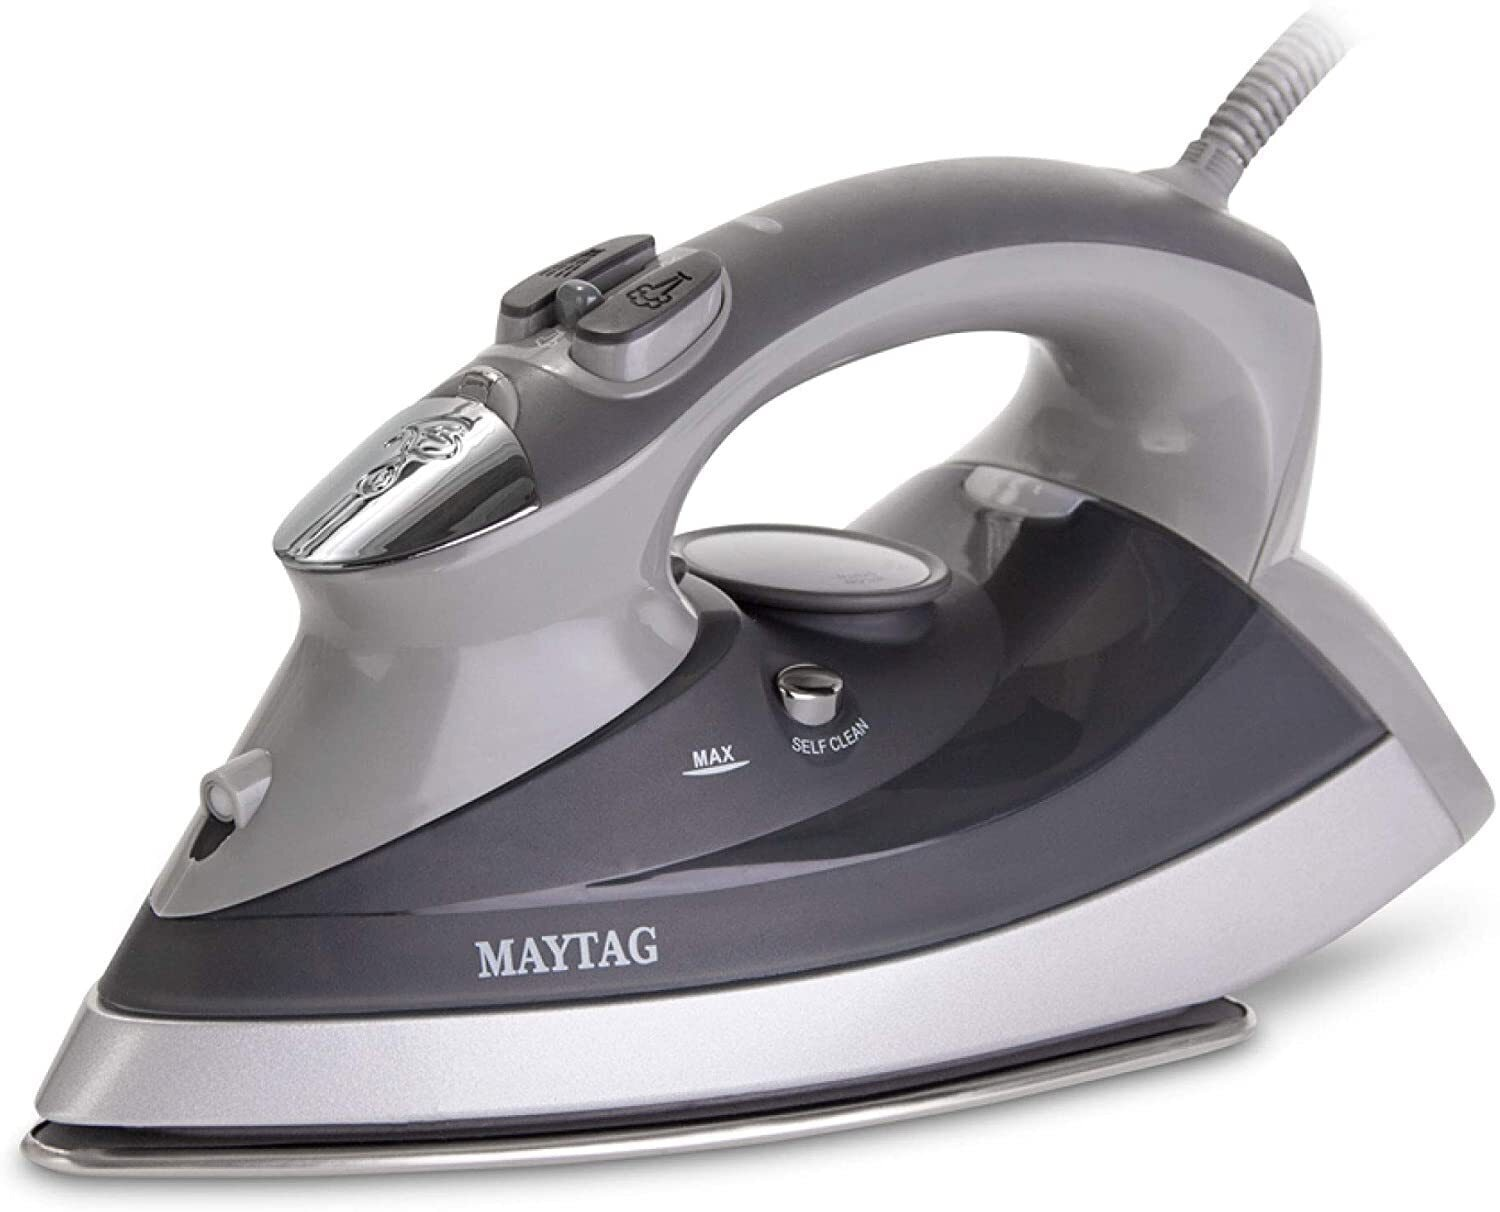 Maytag M400 Heat Iron and Vertical Steamer